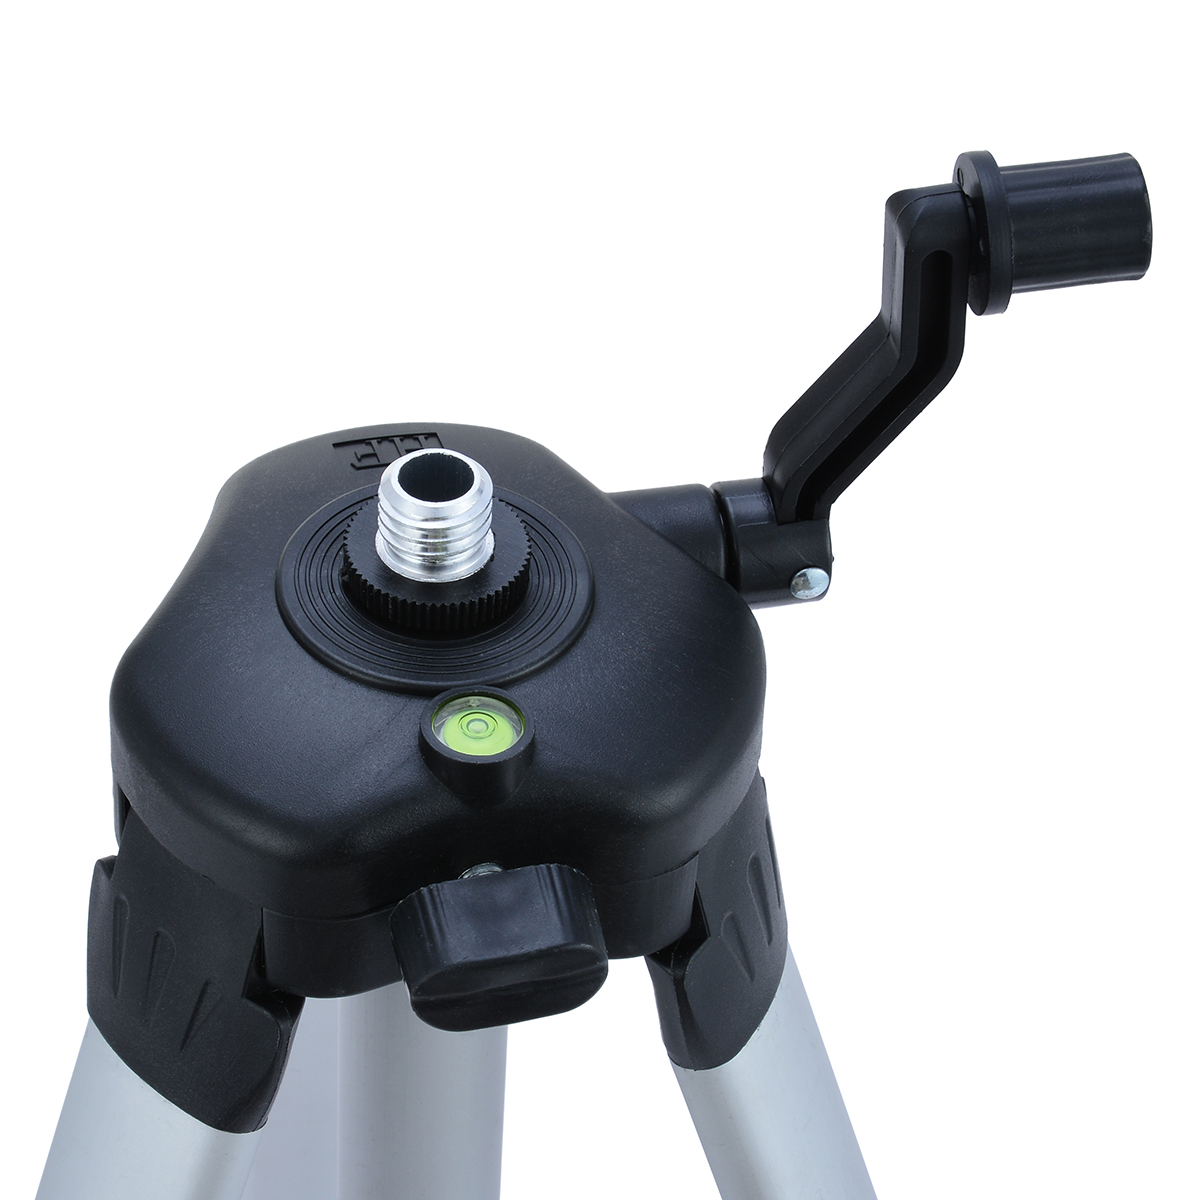 1pc 360 Degree Laser Level Tripod Professional Self-leveling Cross Laser Level Tripod Mayitr Measurement Analysis Instruments